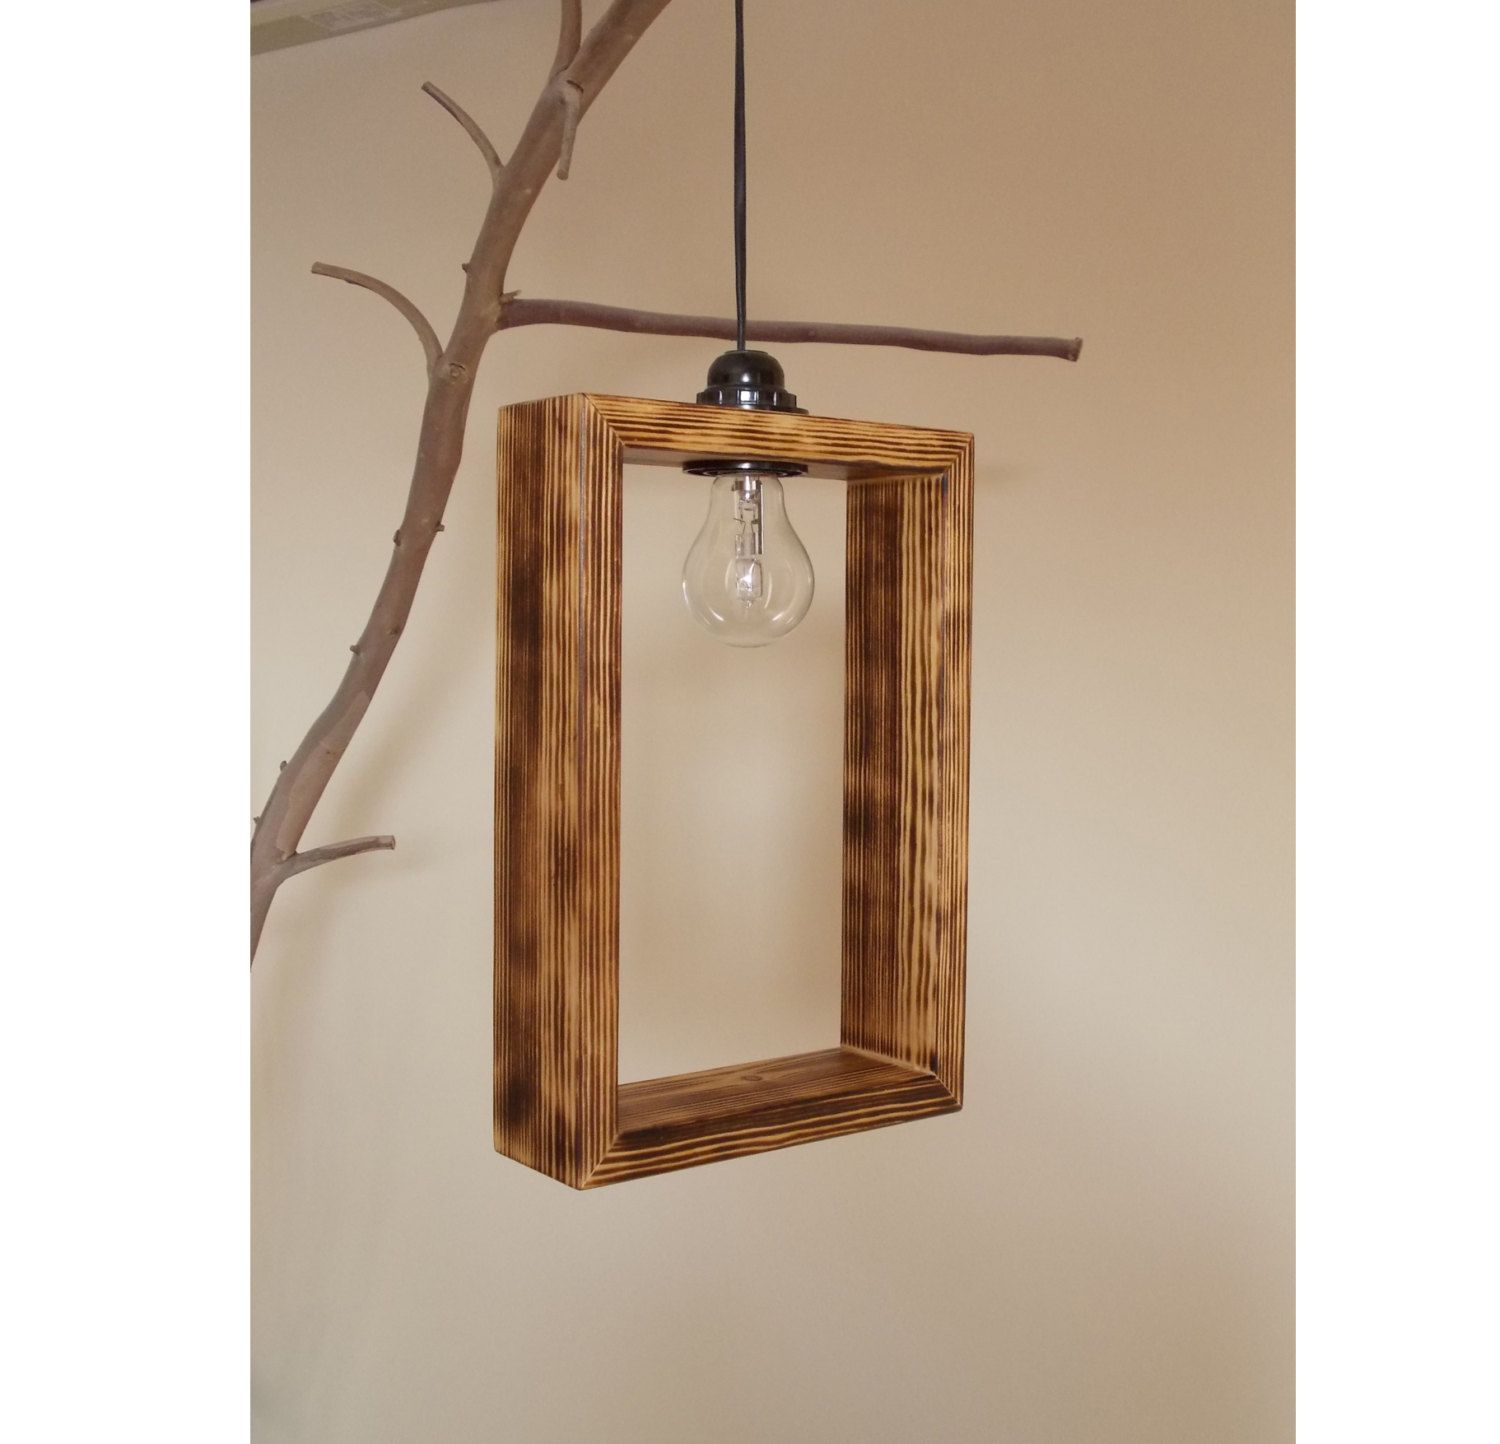 used pendant lighting. Minimal, Wooden, Light Shade, In Distressed White That Can Be Used As A Pendant Lighting